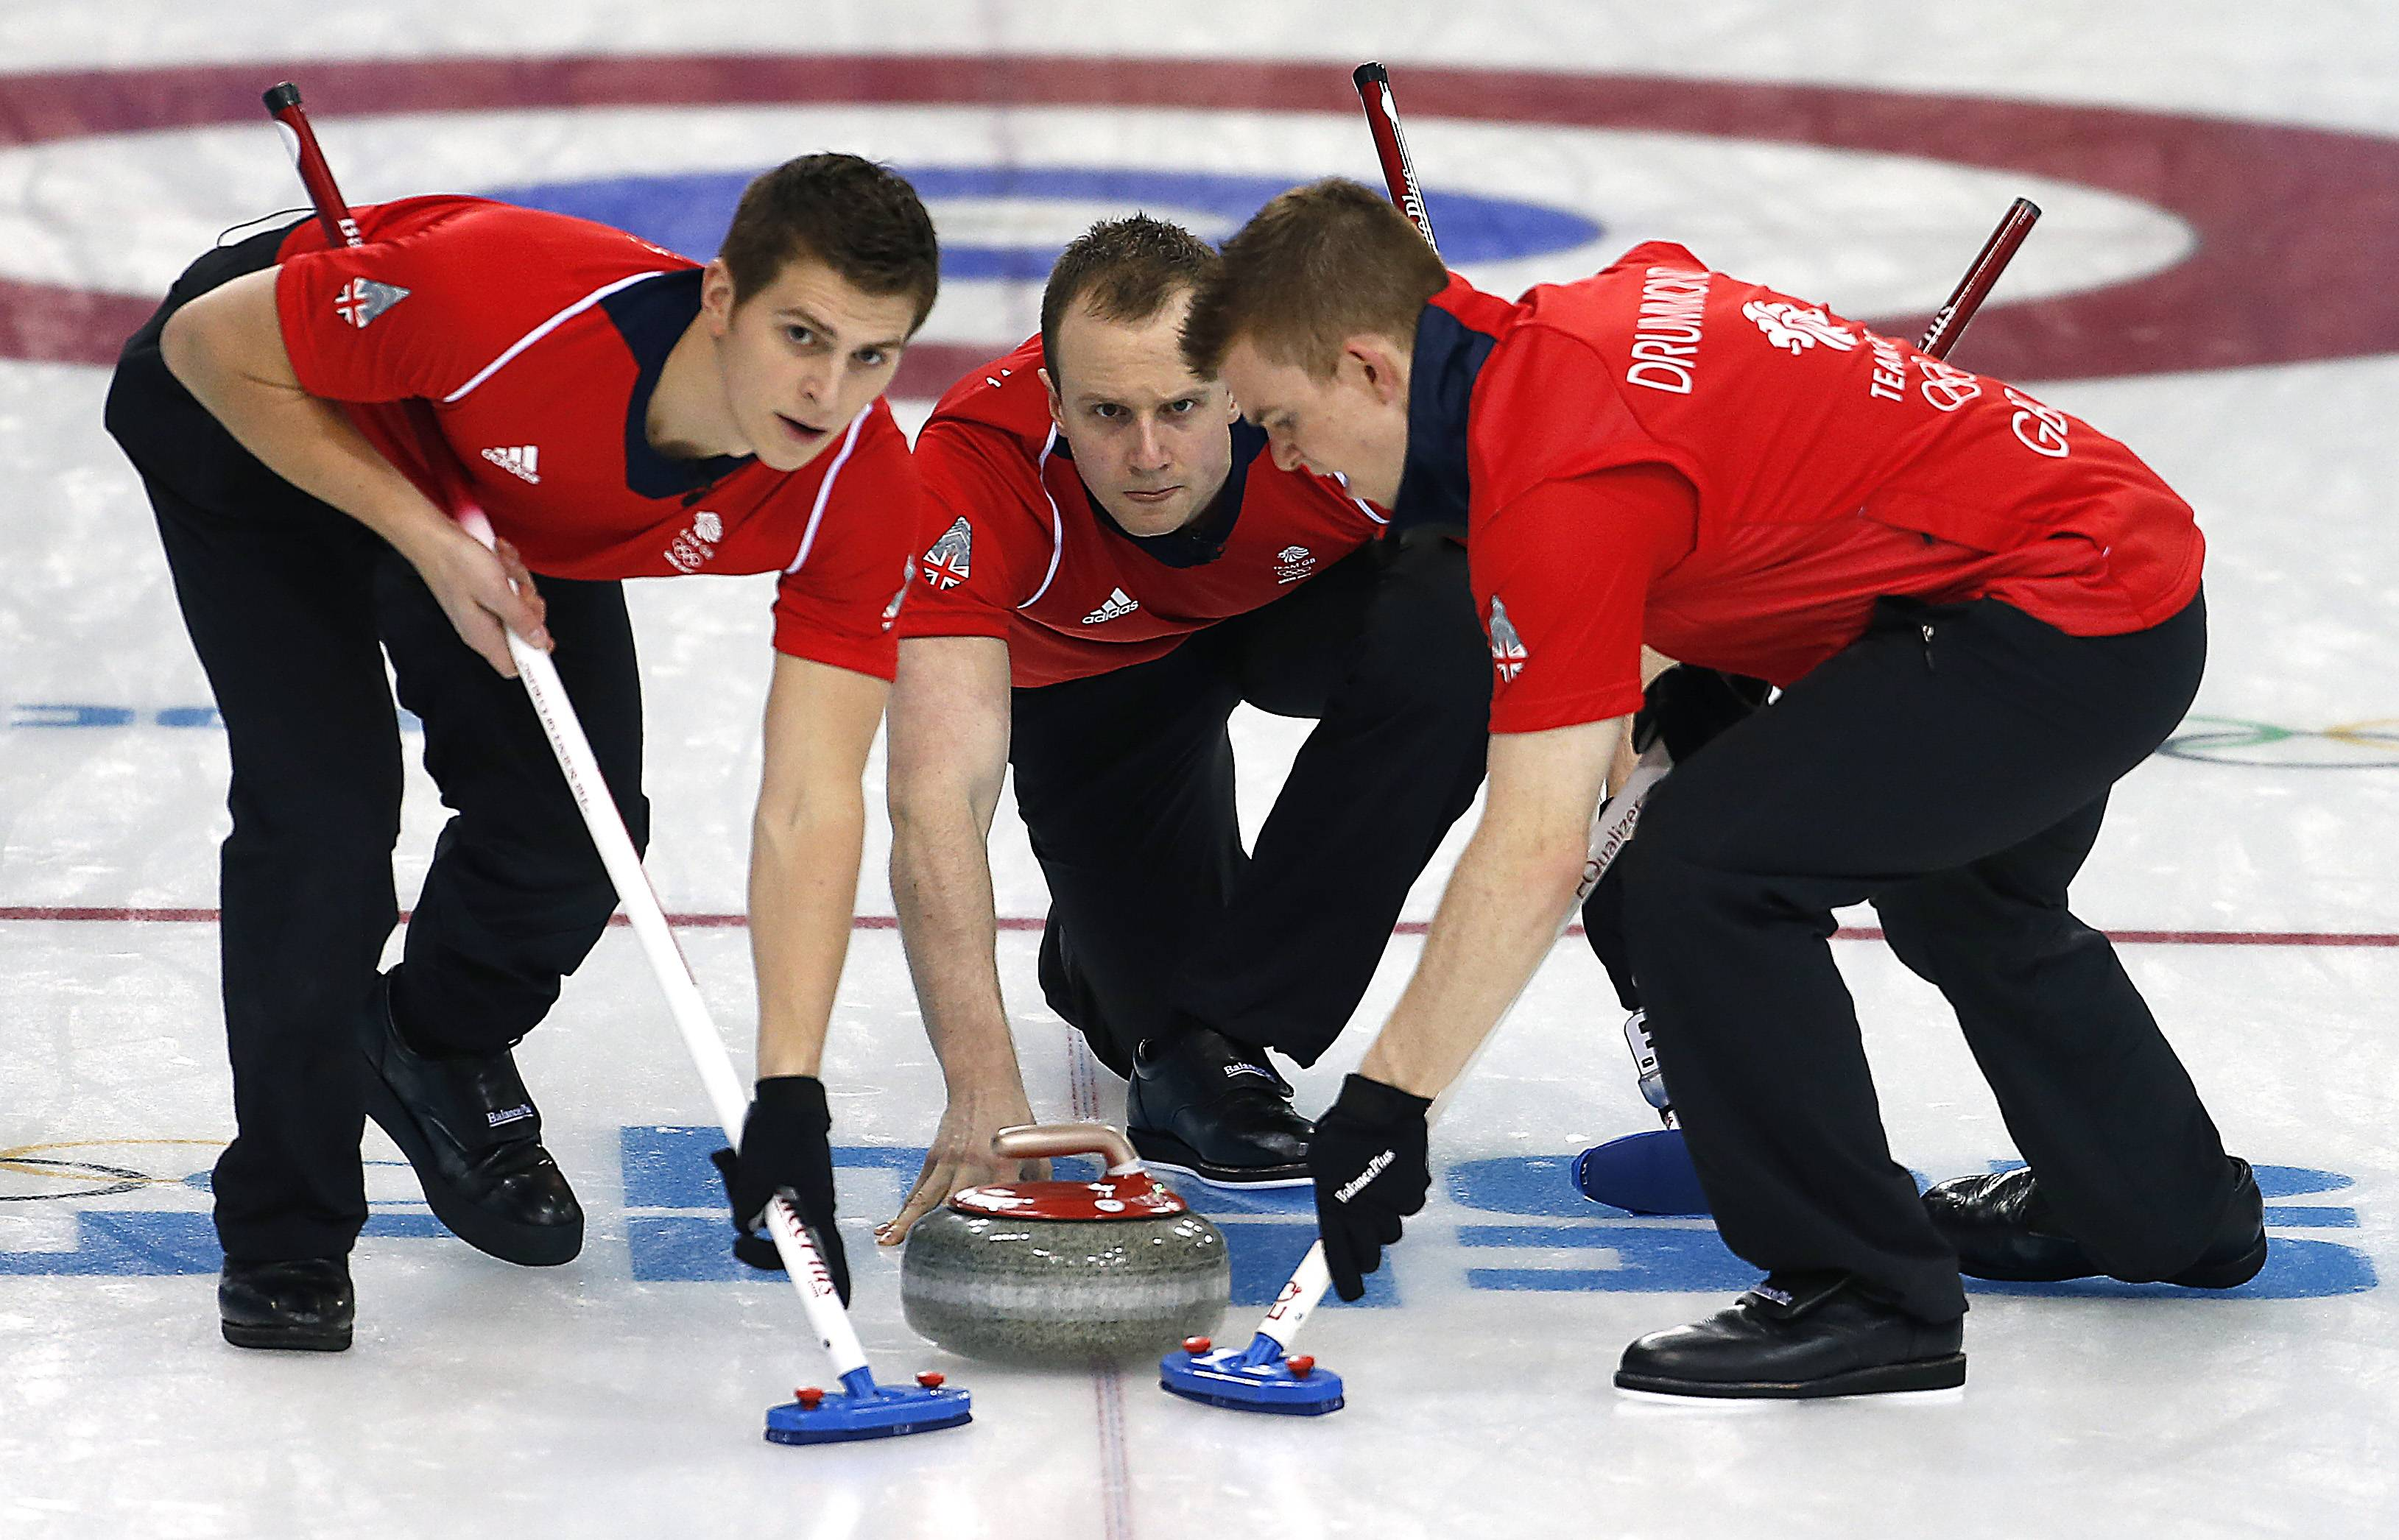 Britain's Michael Goodfellow, center, releases the rock while Scott Andrews, left, and Greg Drummond, right, sweep the ice during the men's curling competition against Denmark.